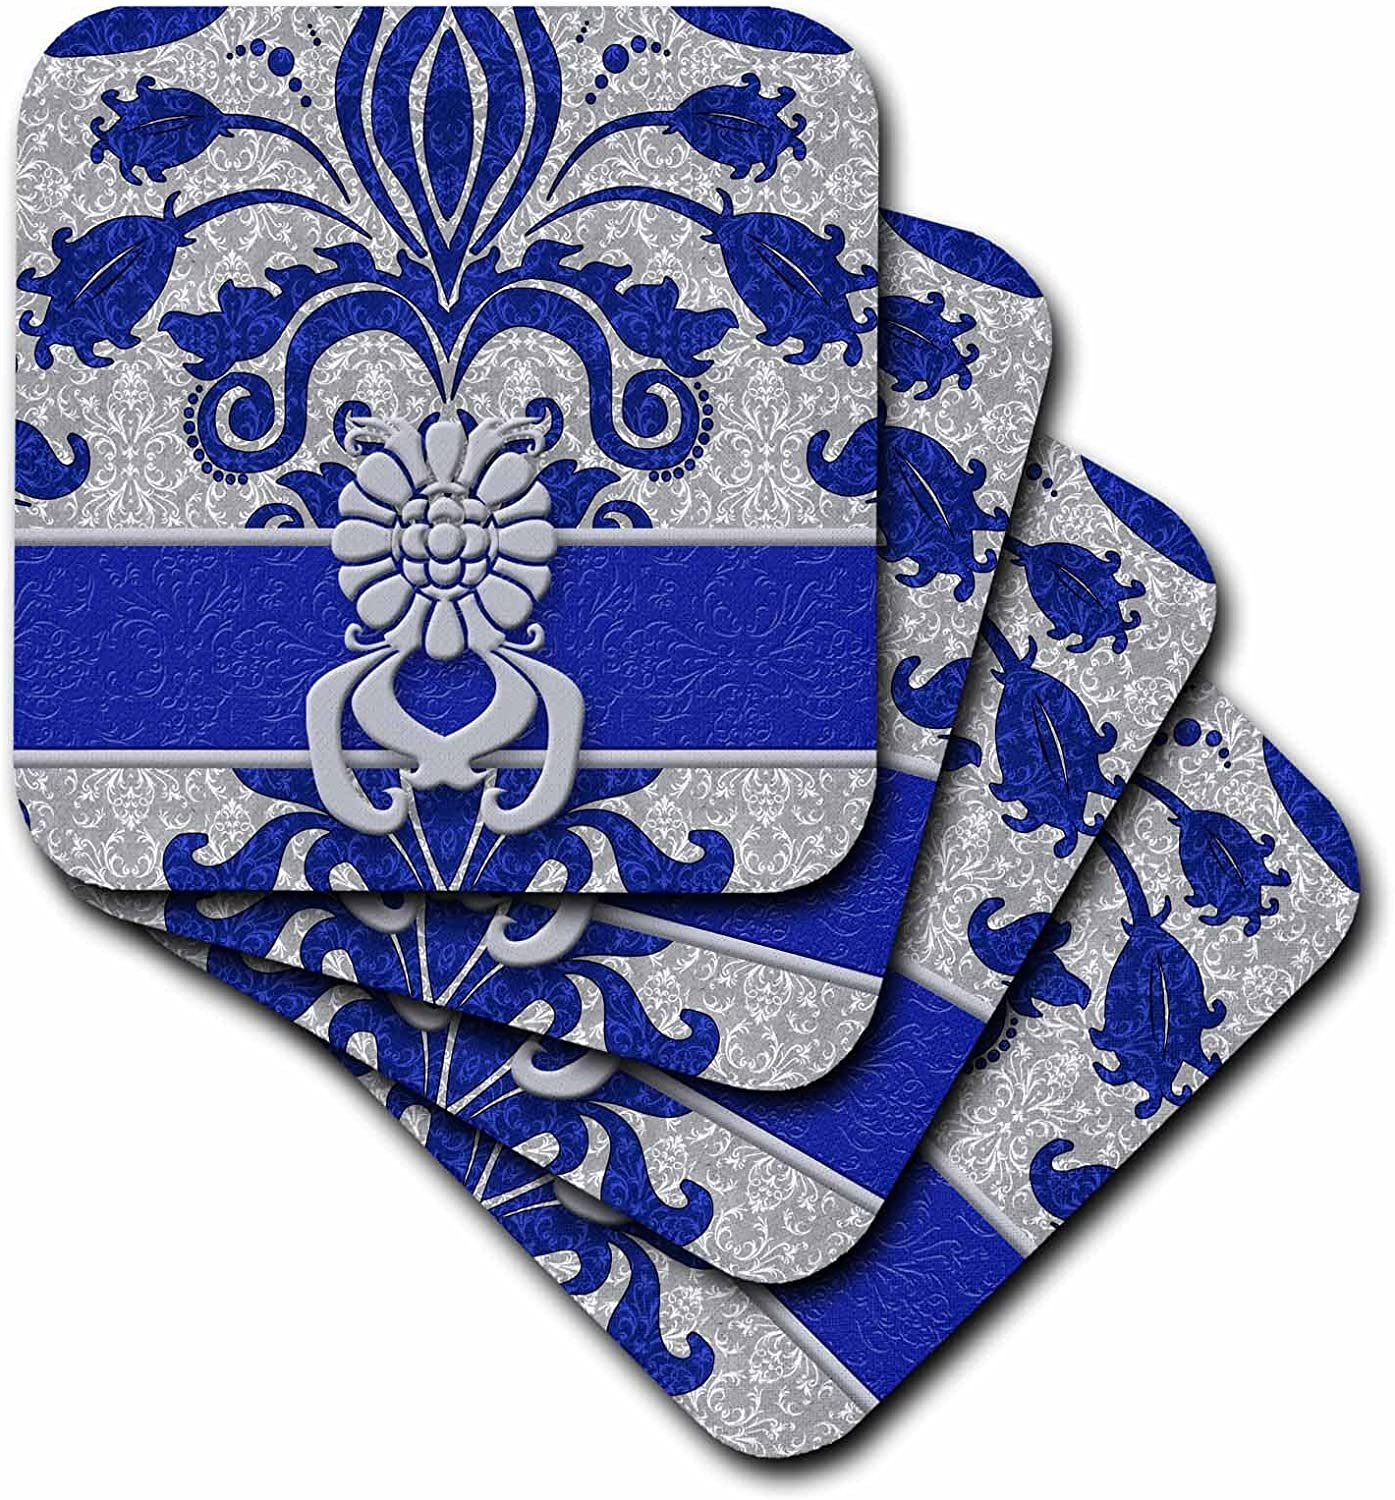 3drose Cst 15450 3 Damask Royal Blue And Silver Ceramic Tile Coasters Set Of 4 Home Kitchen